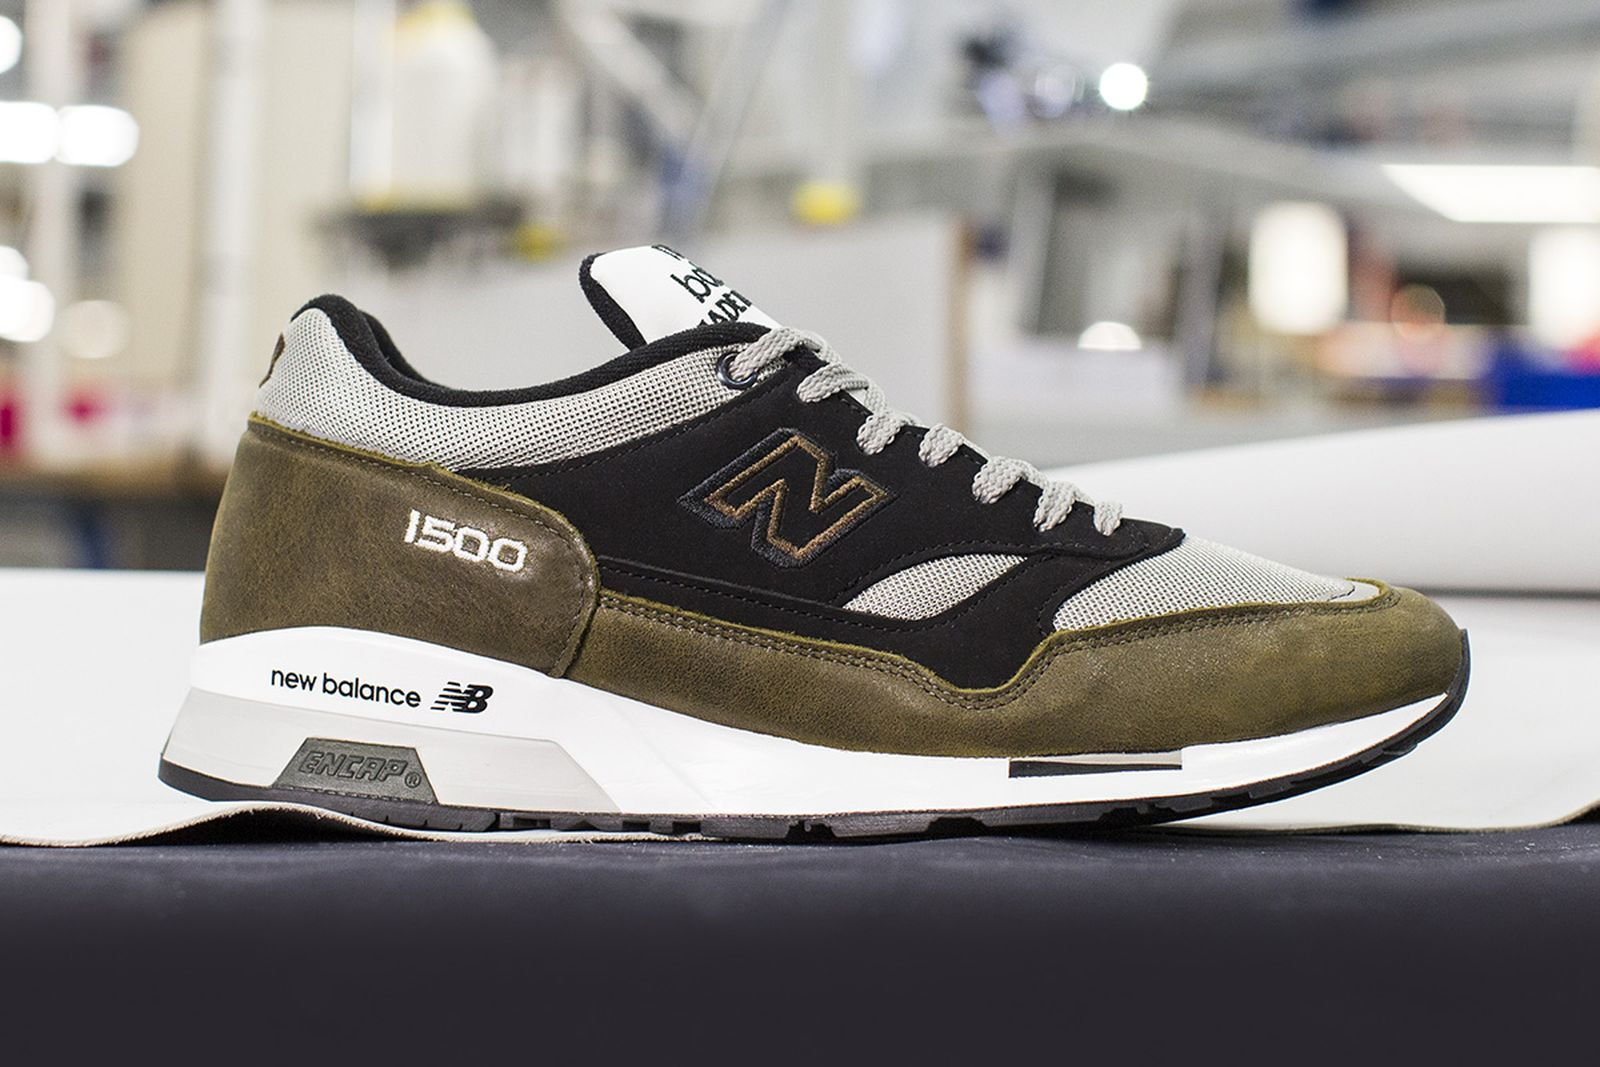 new balance made uk ss19 release date price NB Made Factory Off Foot Season 1 1 0001 NB Made Factory Off Foot Season 1 8 New Balance Made in UK